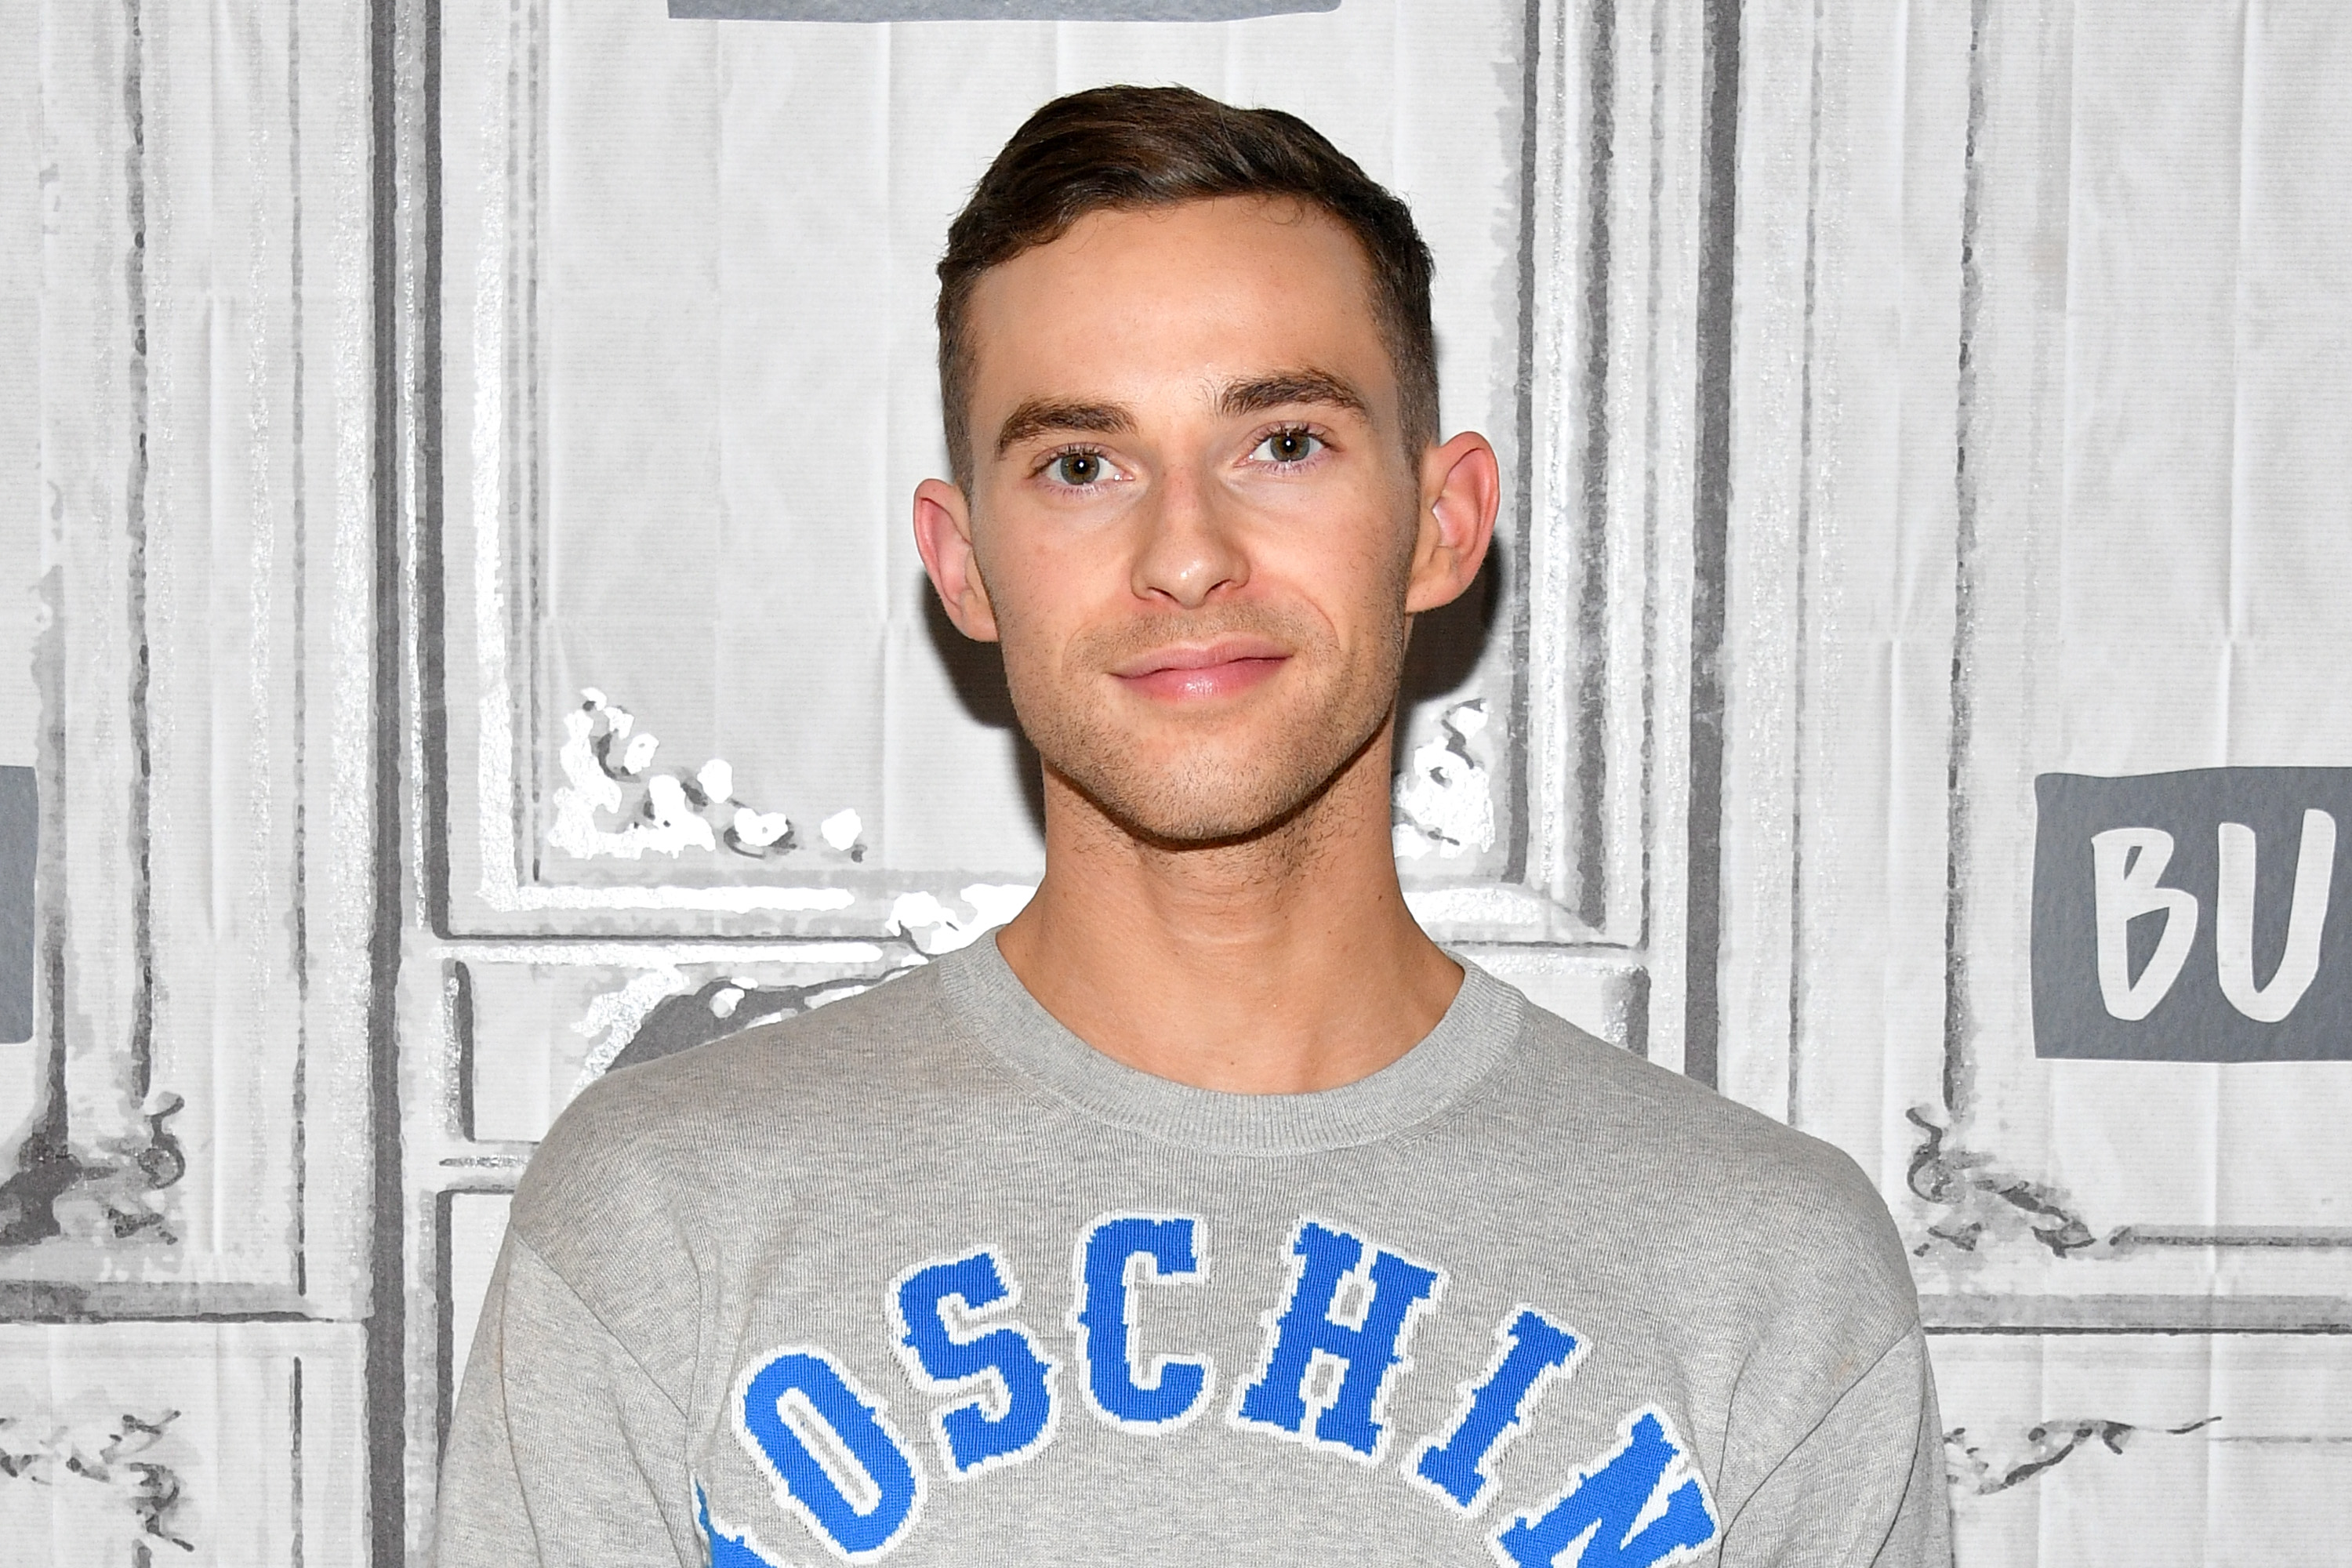 Adam Rippon, who said he is retiring from professional figure skating